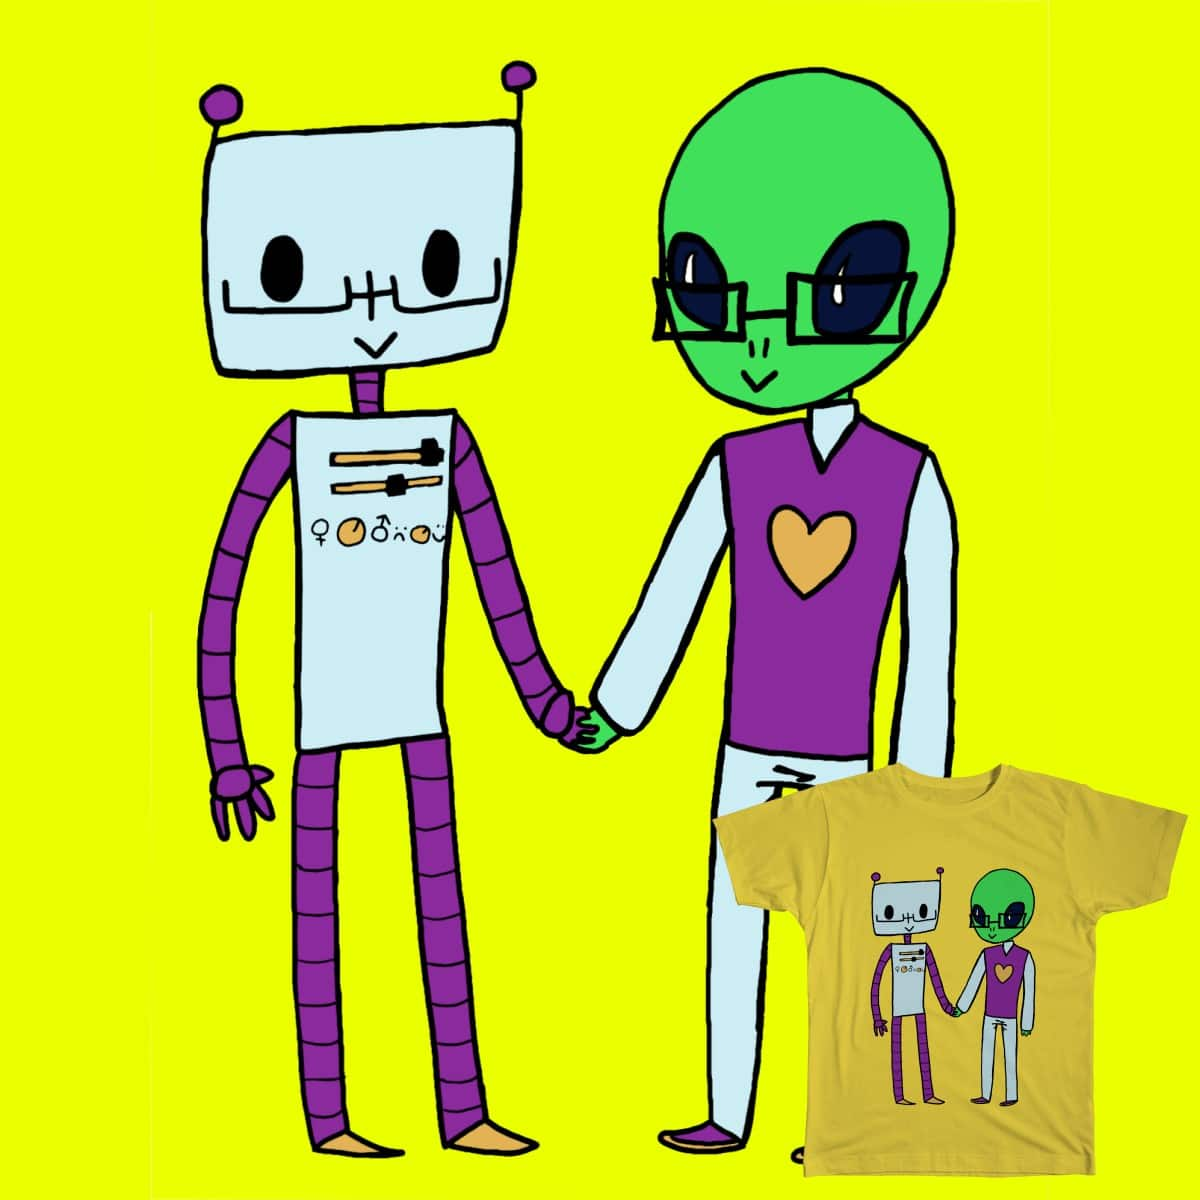 Let's Join Forces! by dannyConfused and fridafridafrida on Threadless